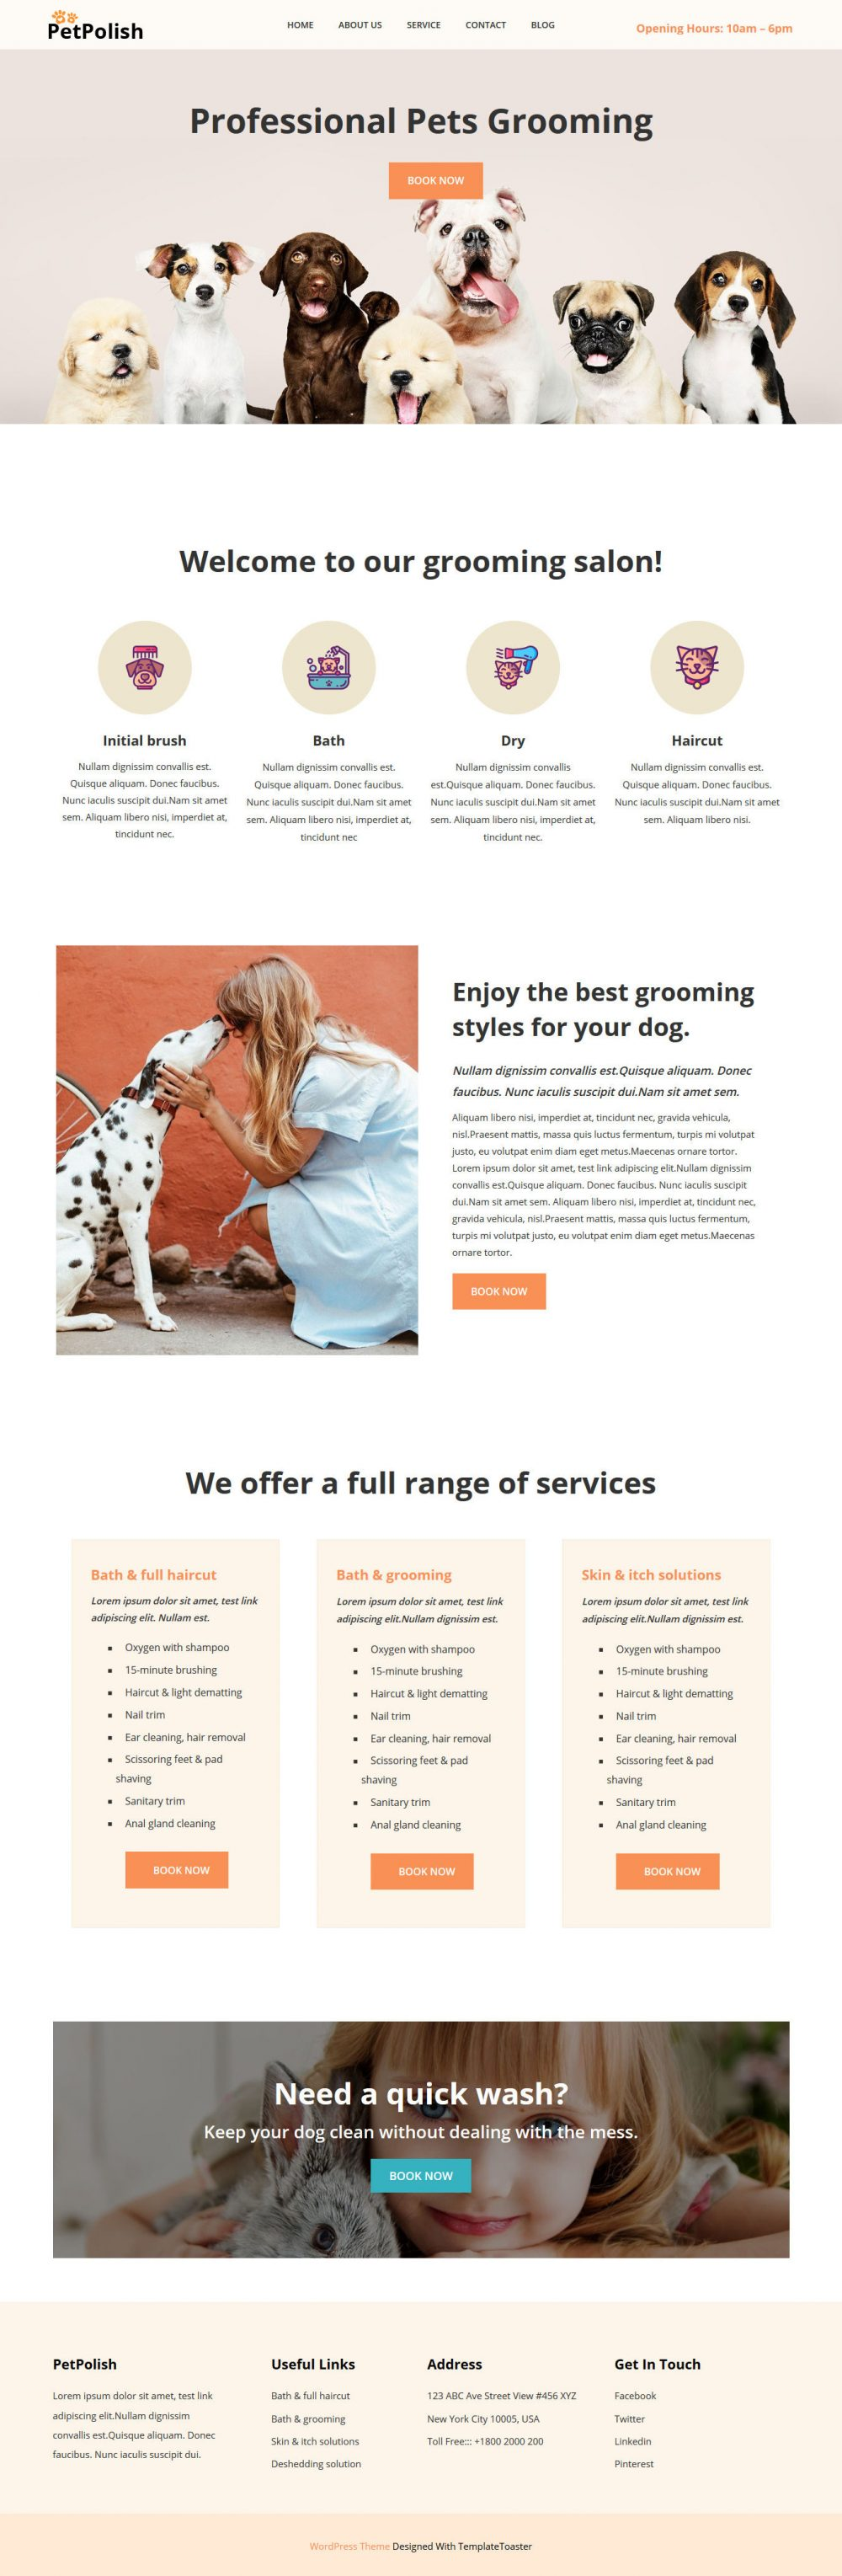 petpolish pet cleaning and care services blogger template